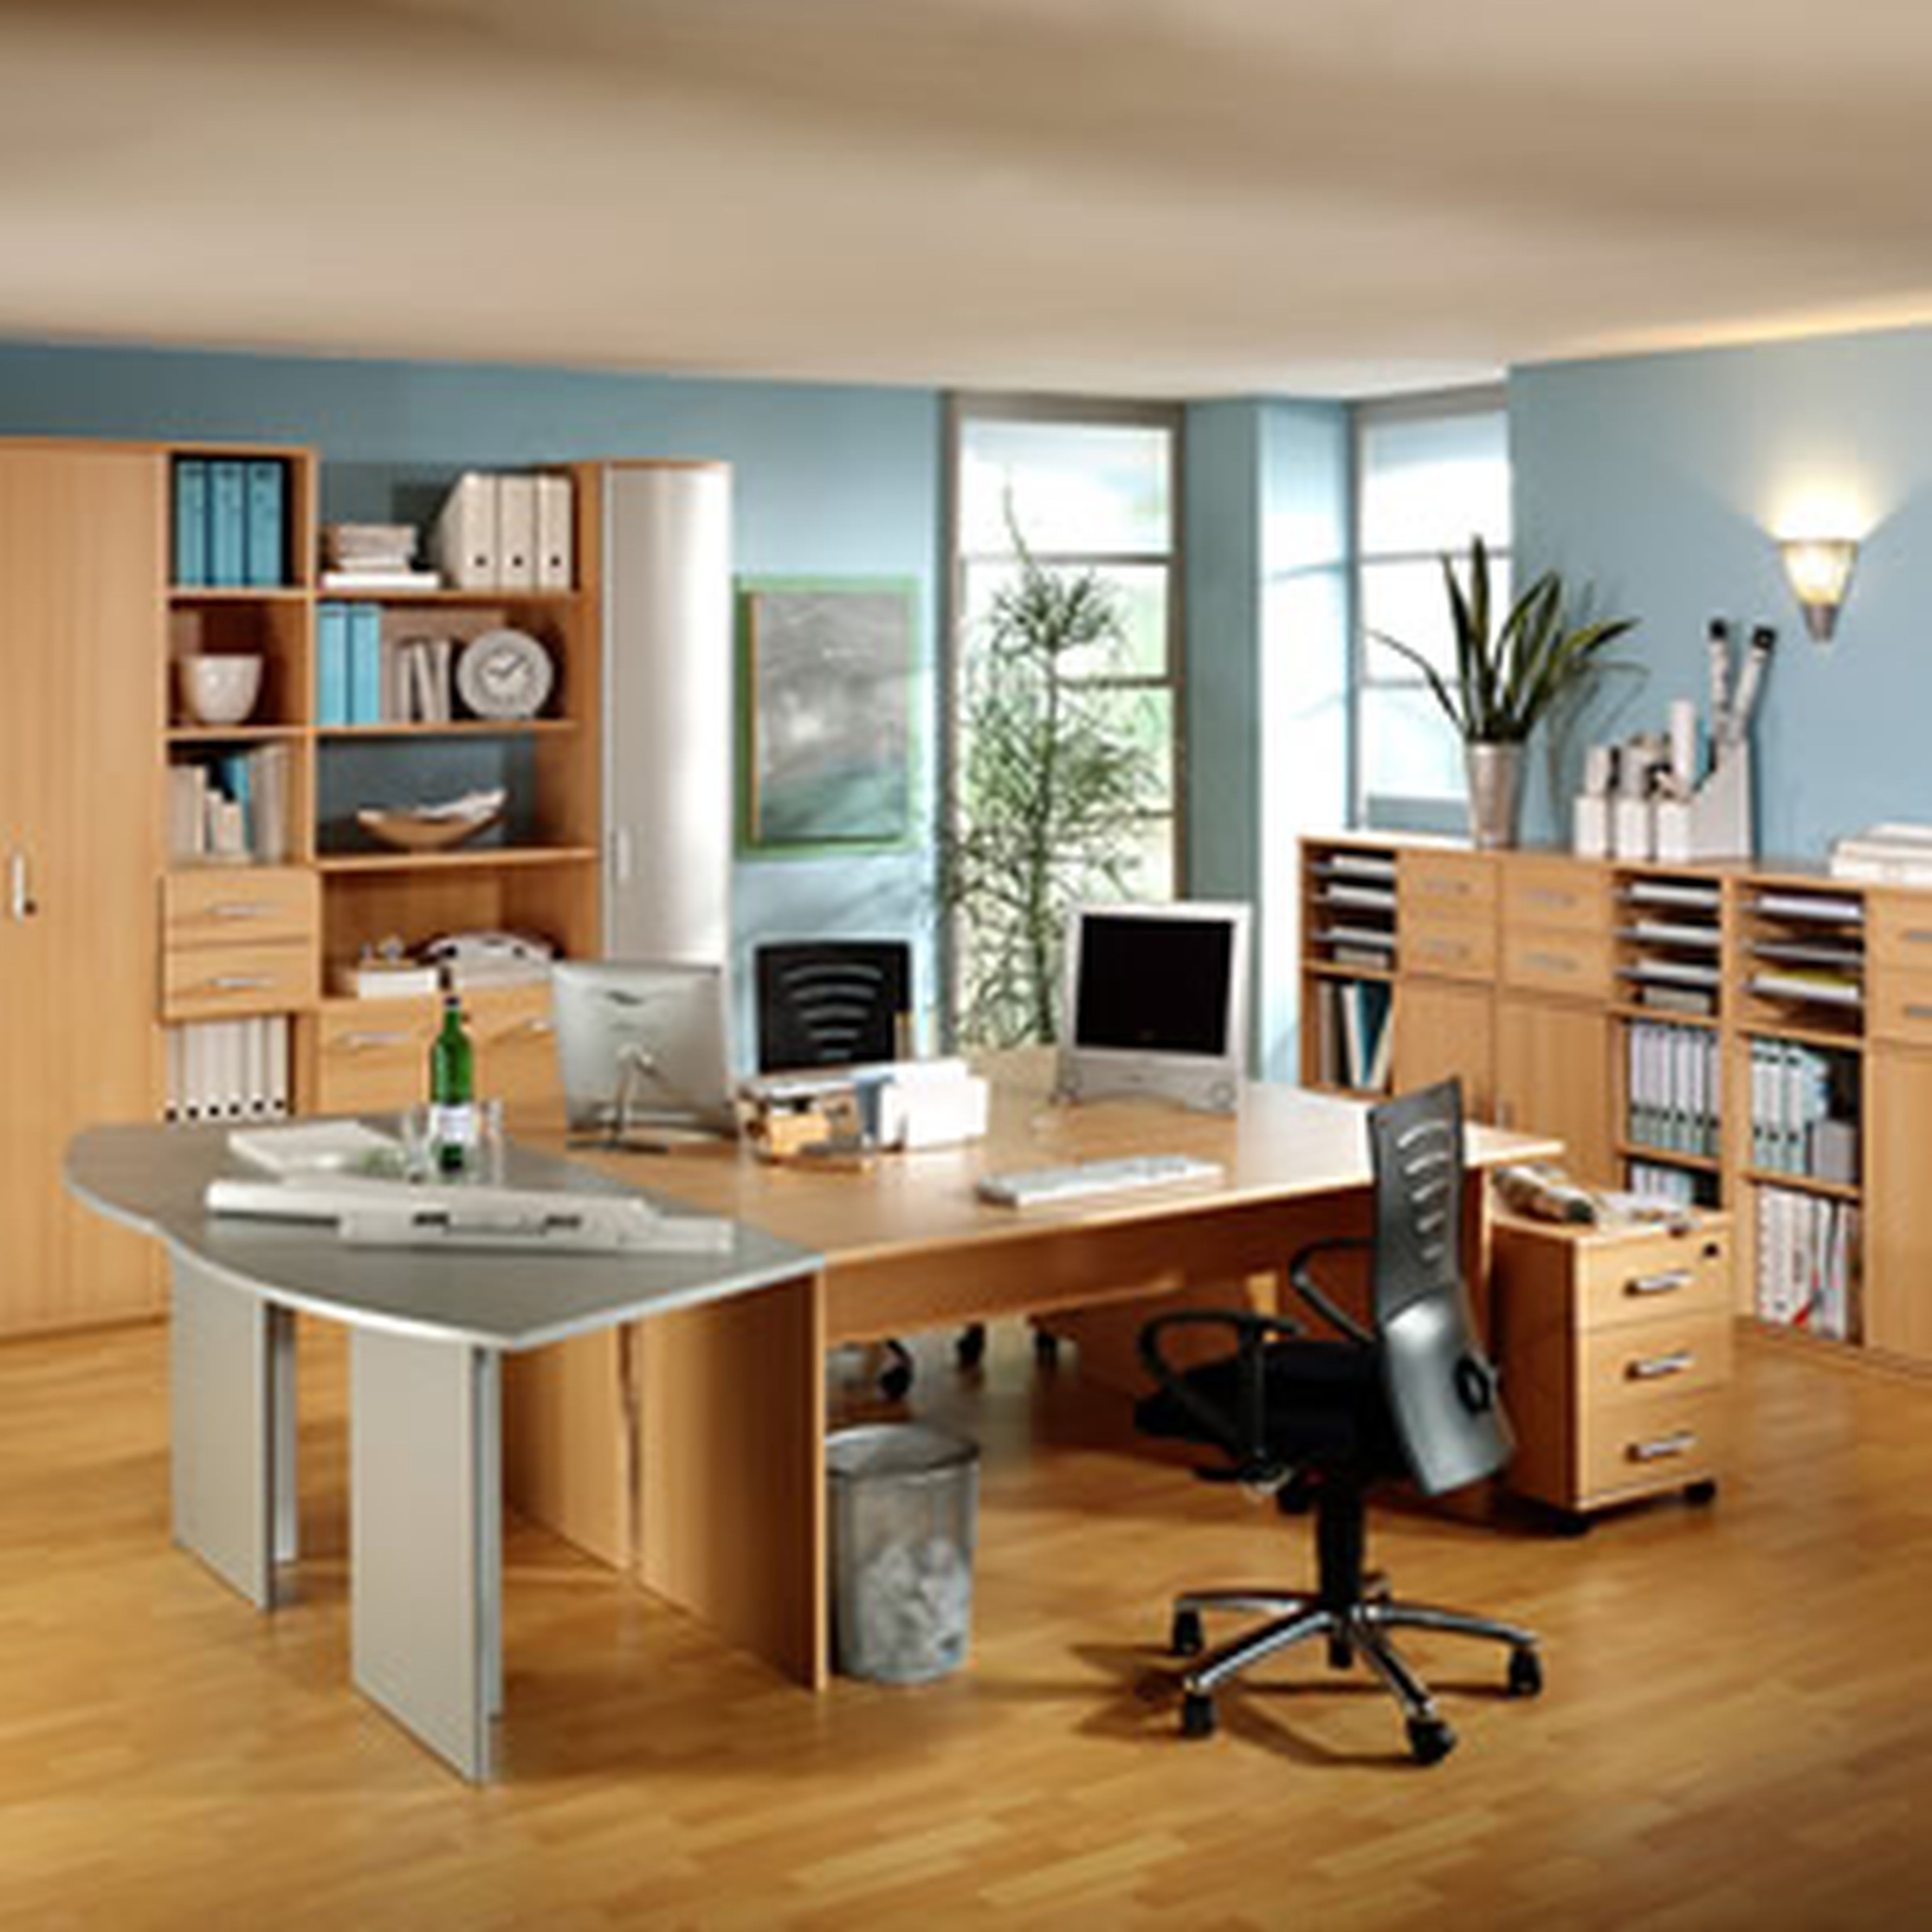 Office Office Room Stylish On For Amazing Of Trendy Home Design Agreeable Ideas 1835 20 Office Room Perfect On Home And Interior 14 Office Room Stunning On Inside Asylumxperiment 2 Office Room